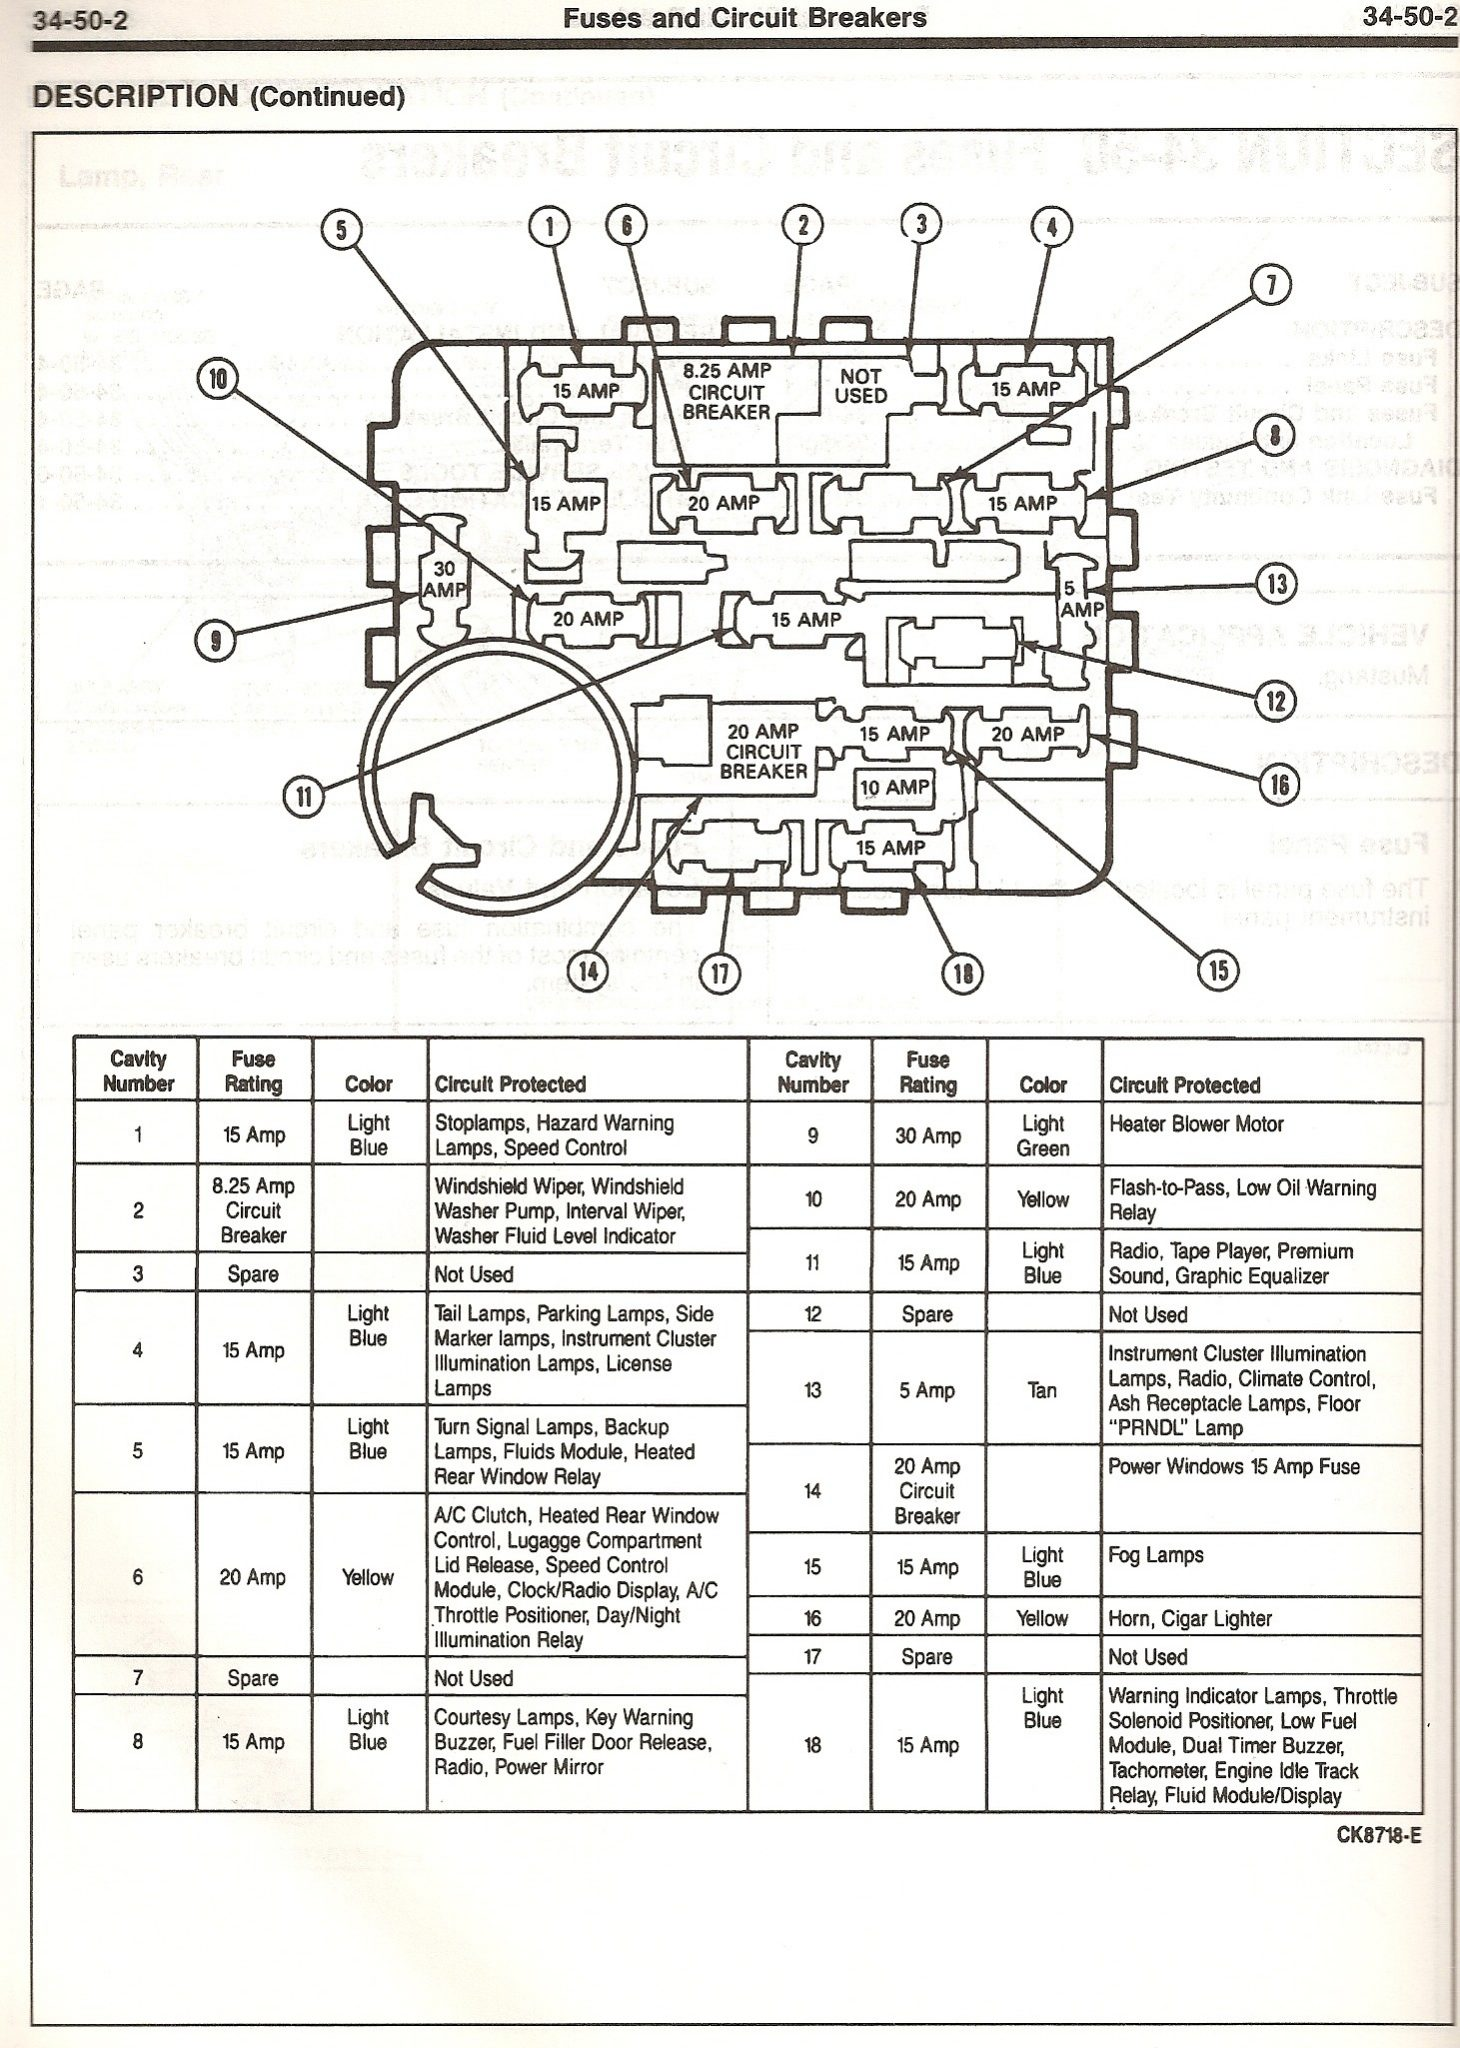 ... 1990 camaro fuse panel diagram electrical wiring diagrams 1990 f250  fuse box diagram 1990 ford mustang